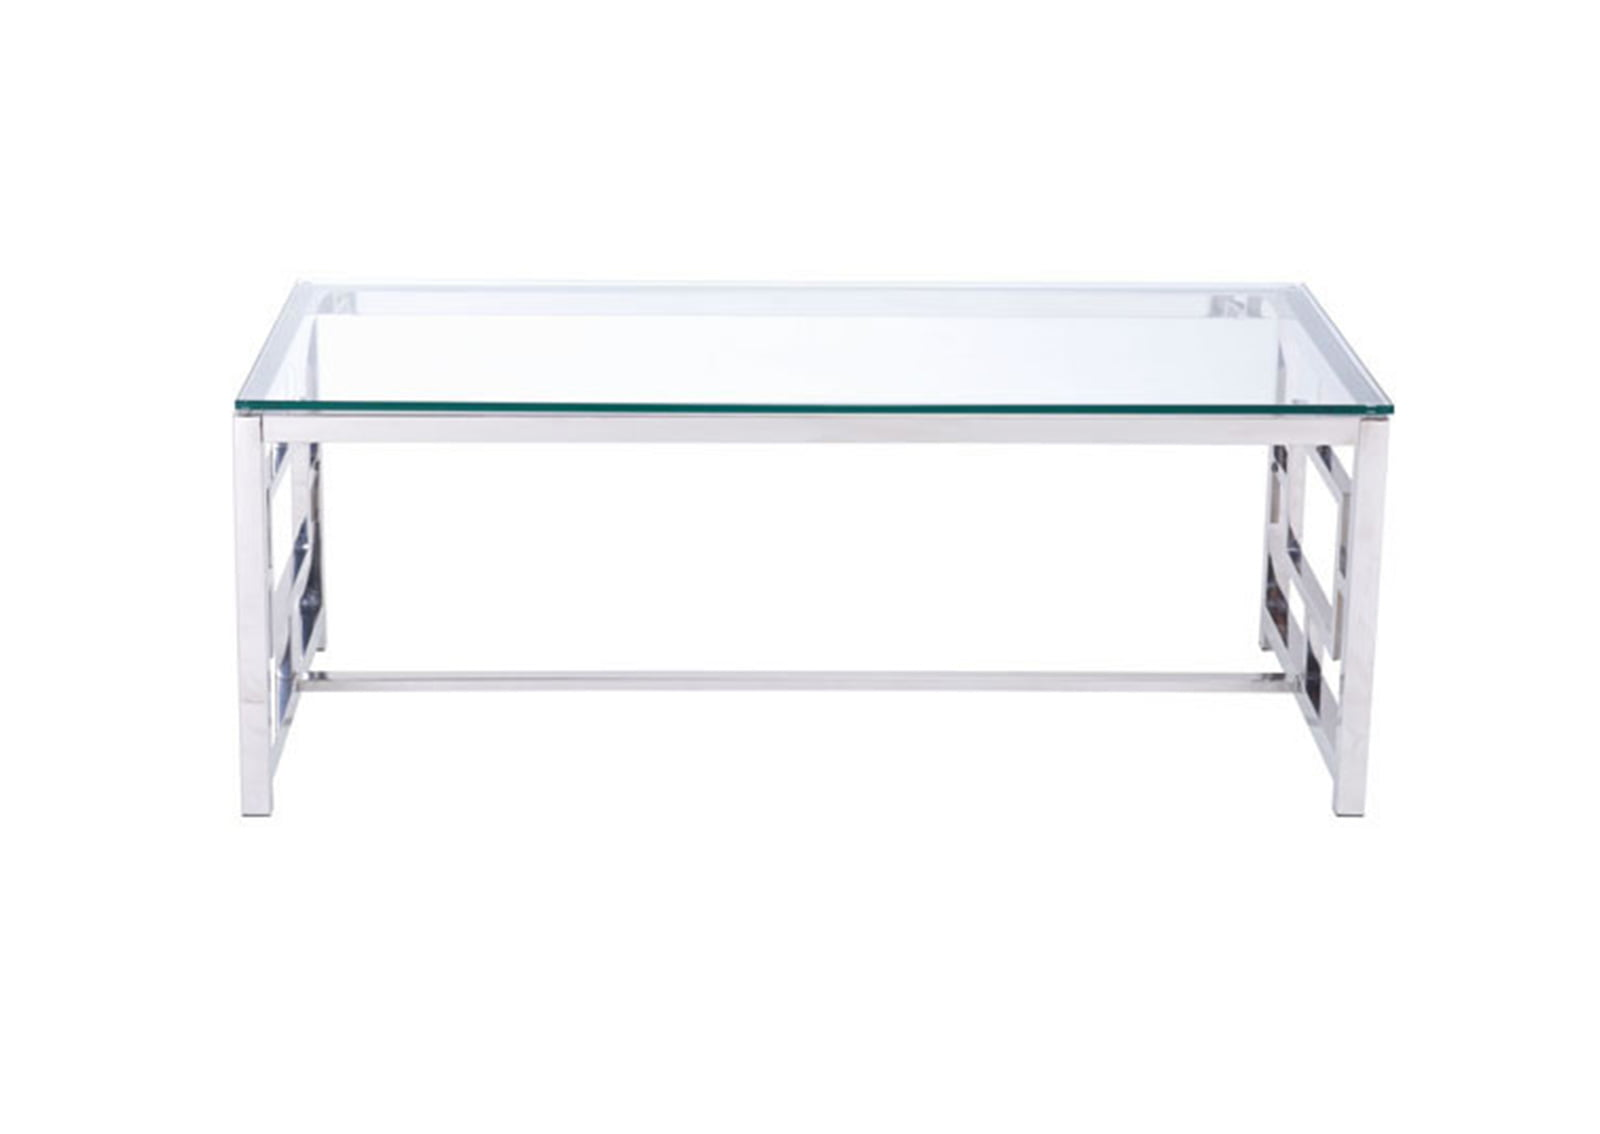 Geranium Coffee Table Stainless Steel Furnishplus